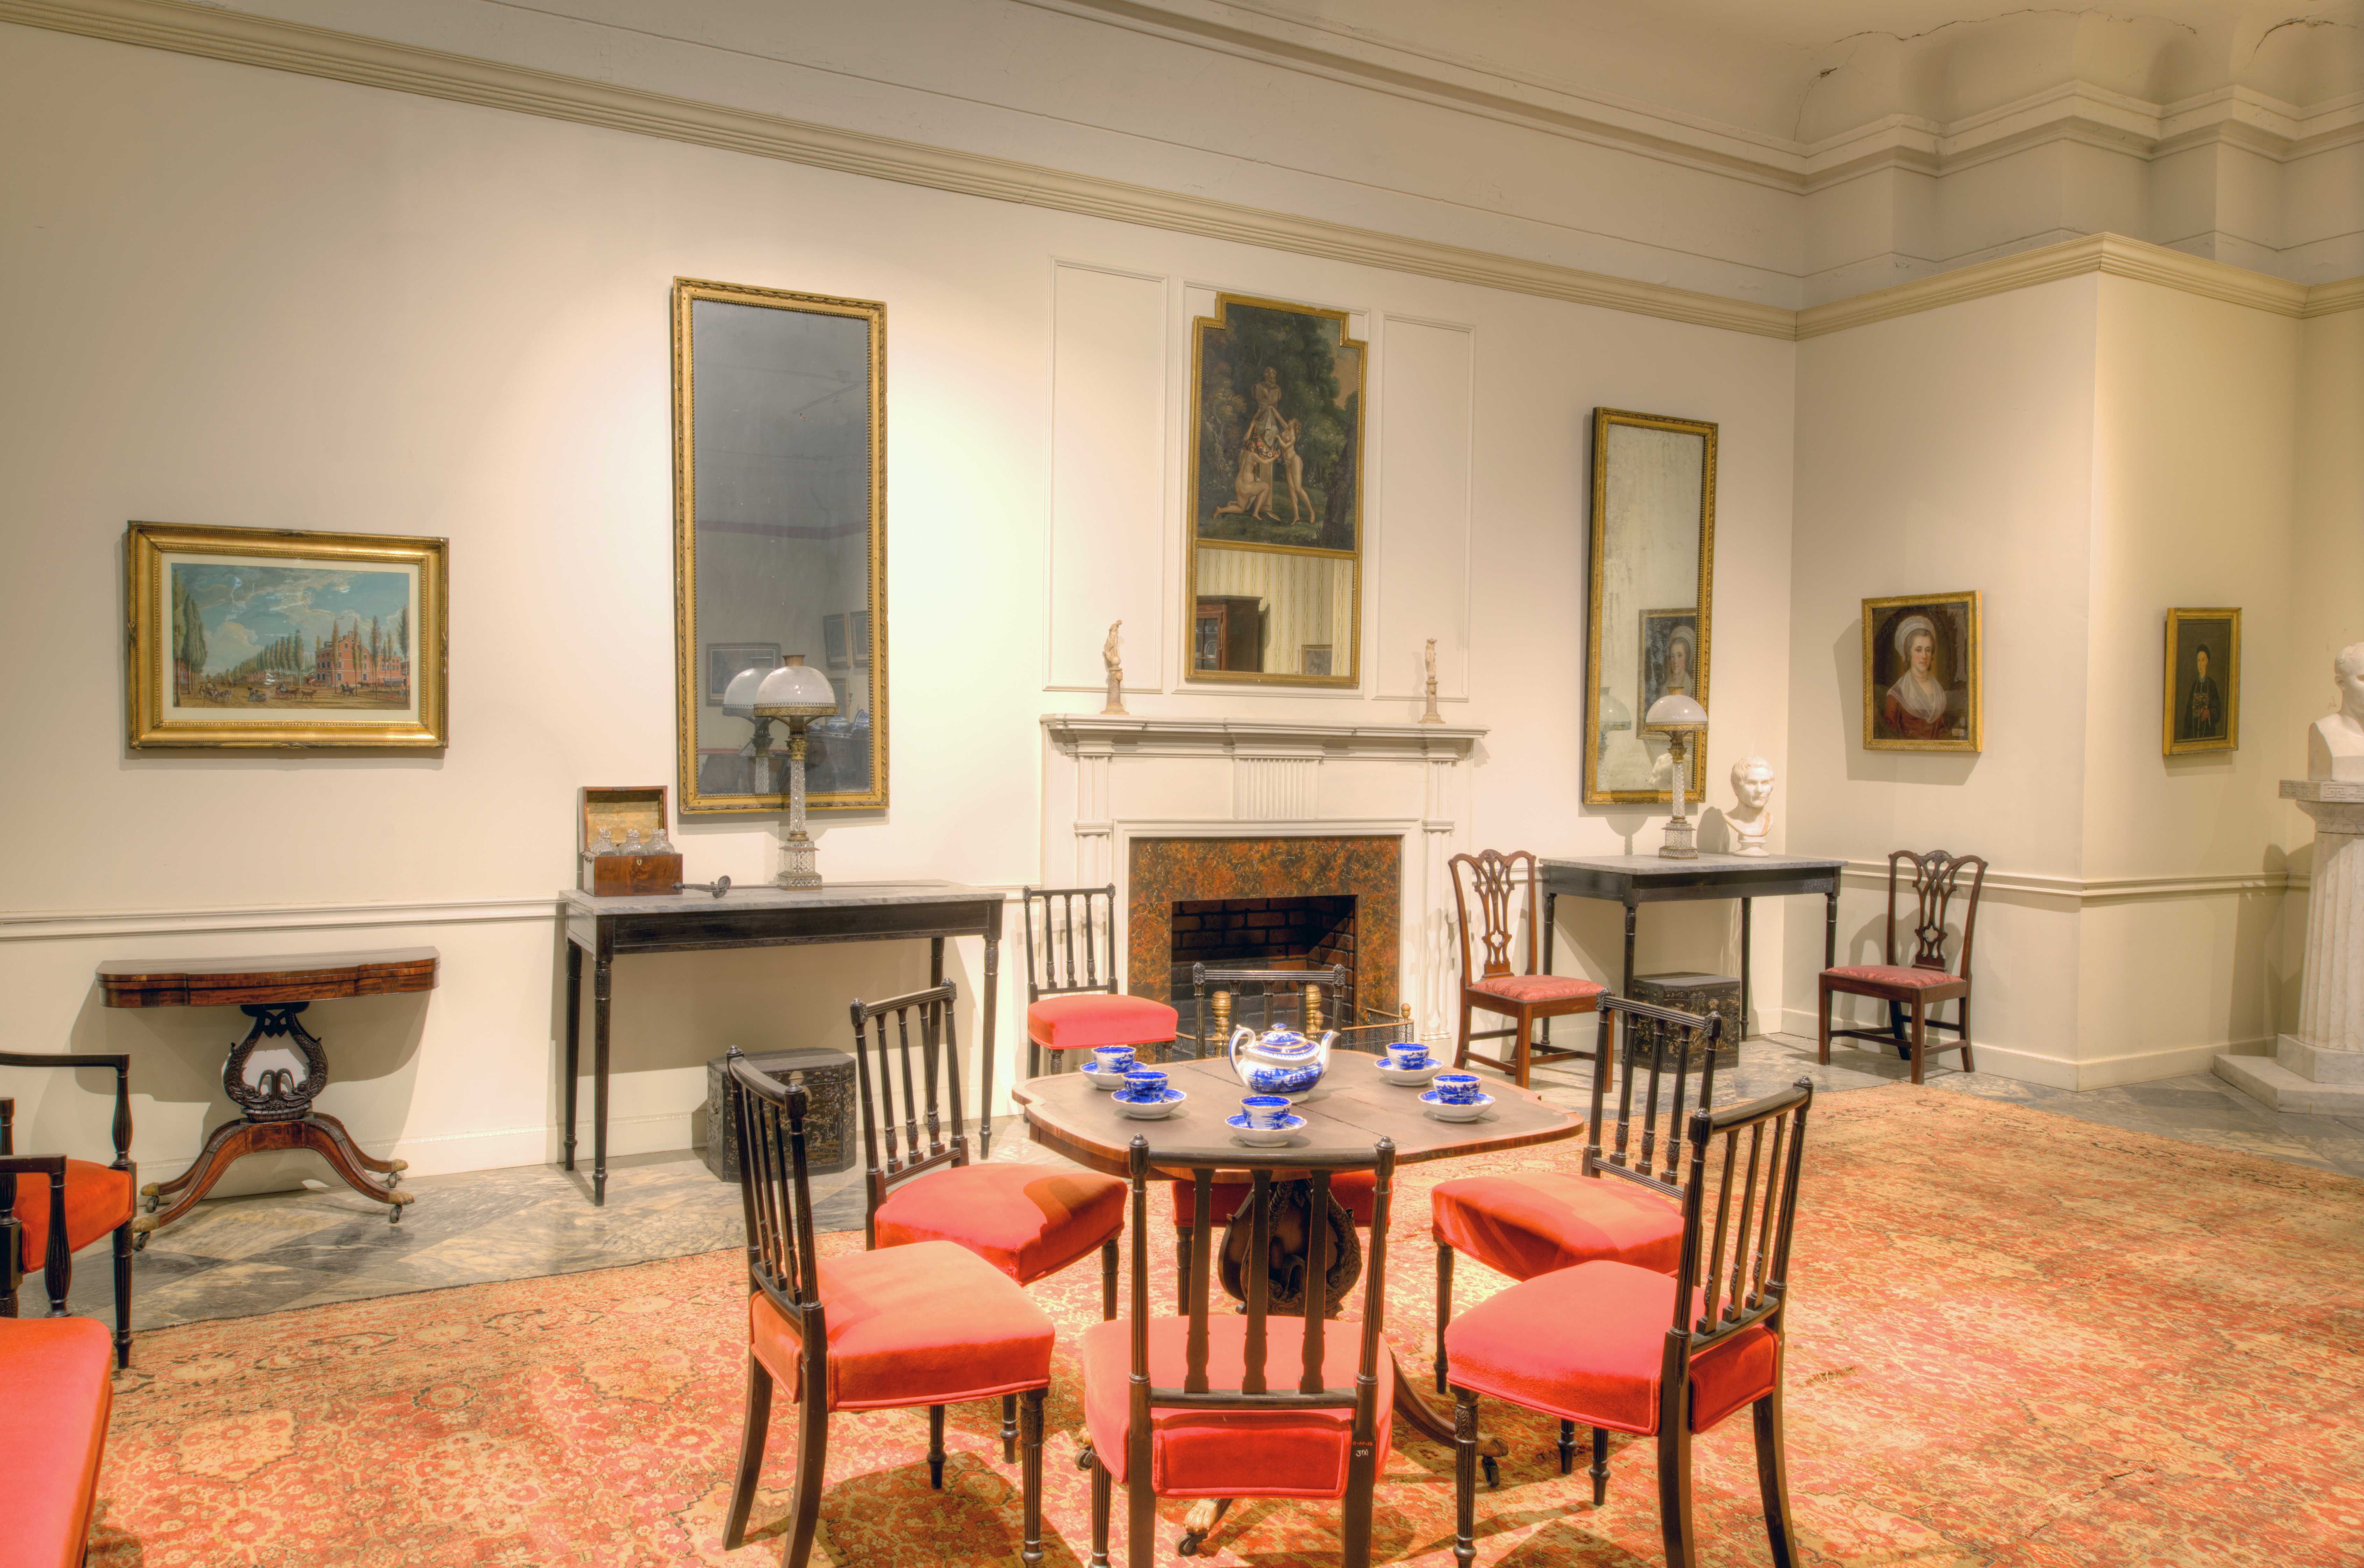 Parlor furnishings from Girard's house, installed at Founder's Hall museum